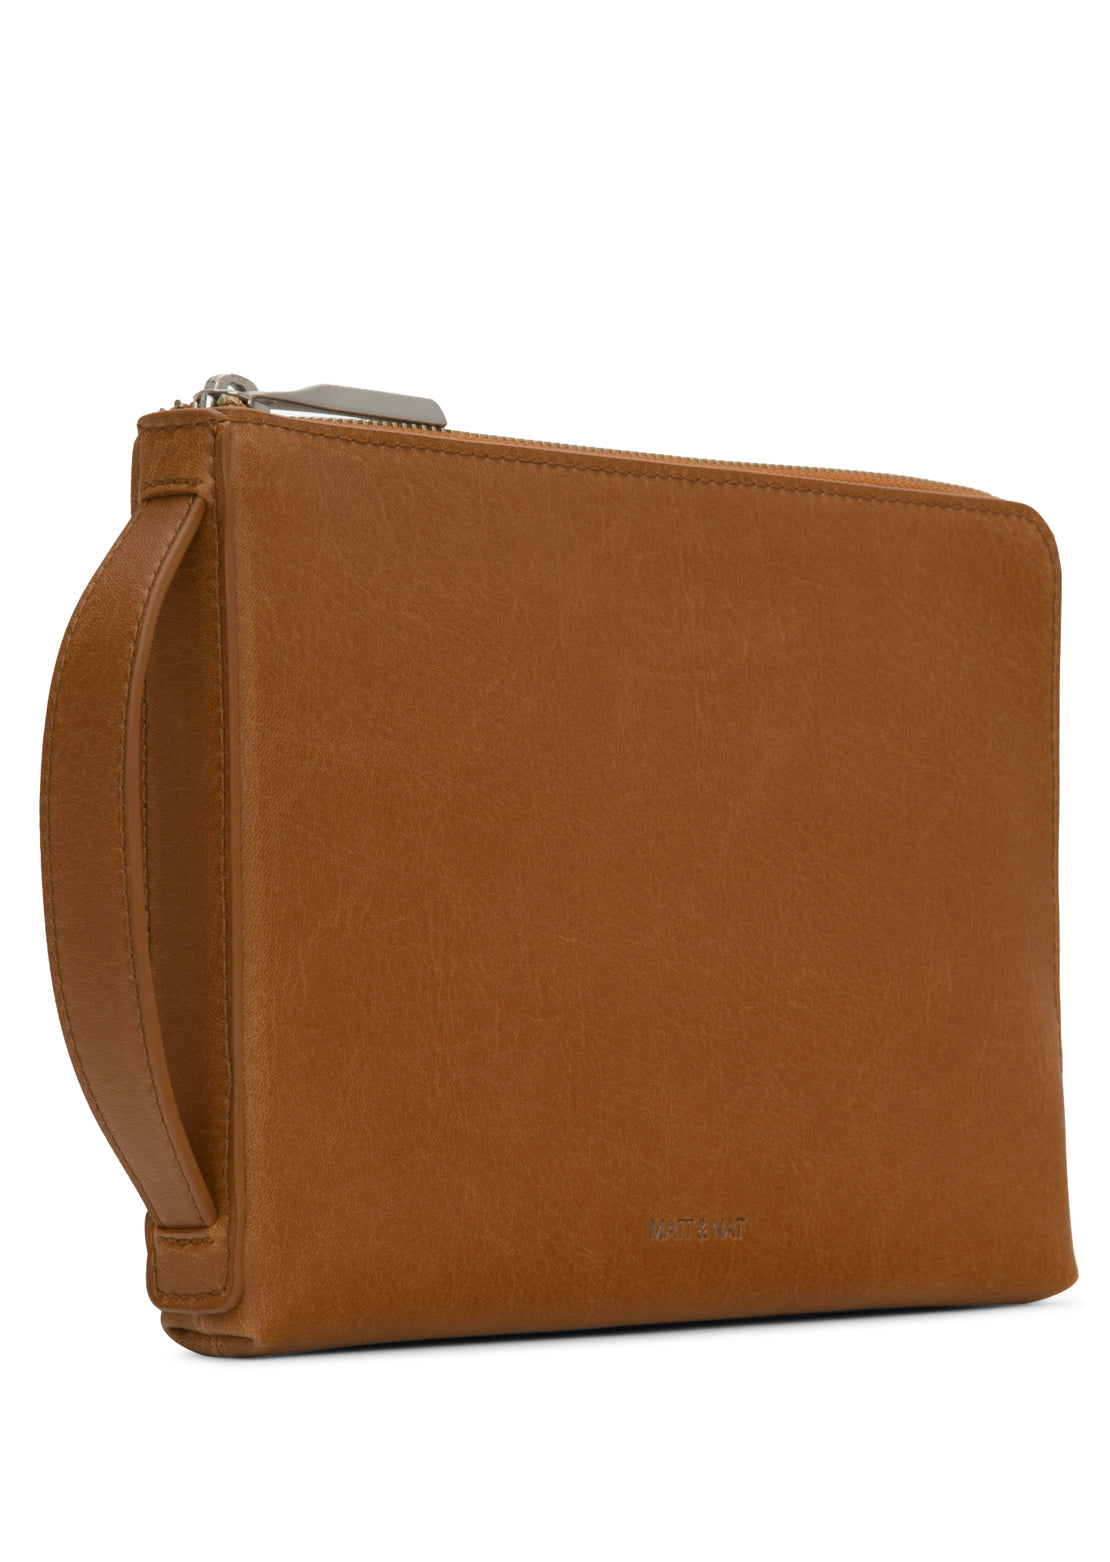 Matt & Nat Seva Large Vintage Wallet Chili Matte Nickel